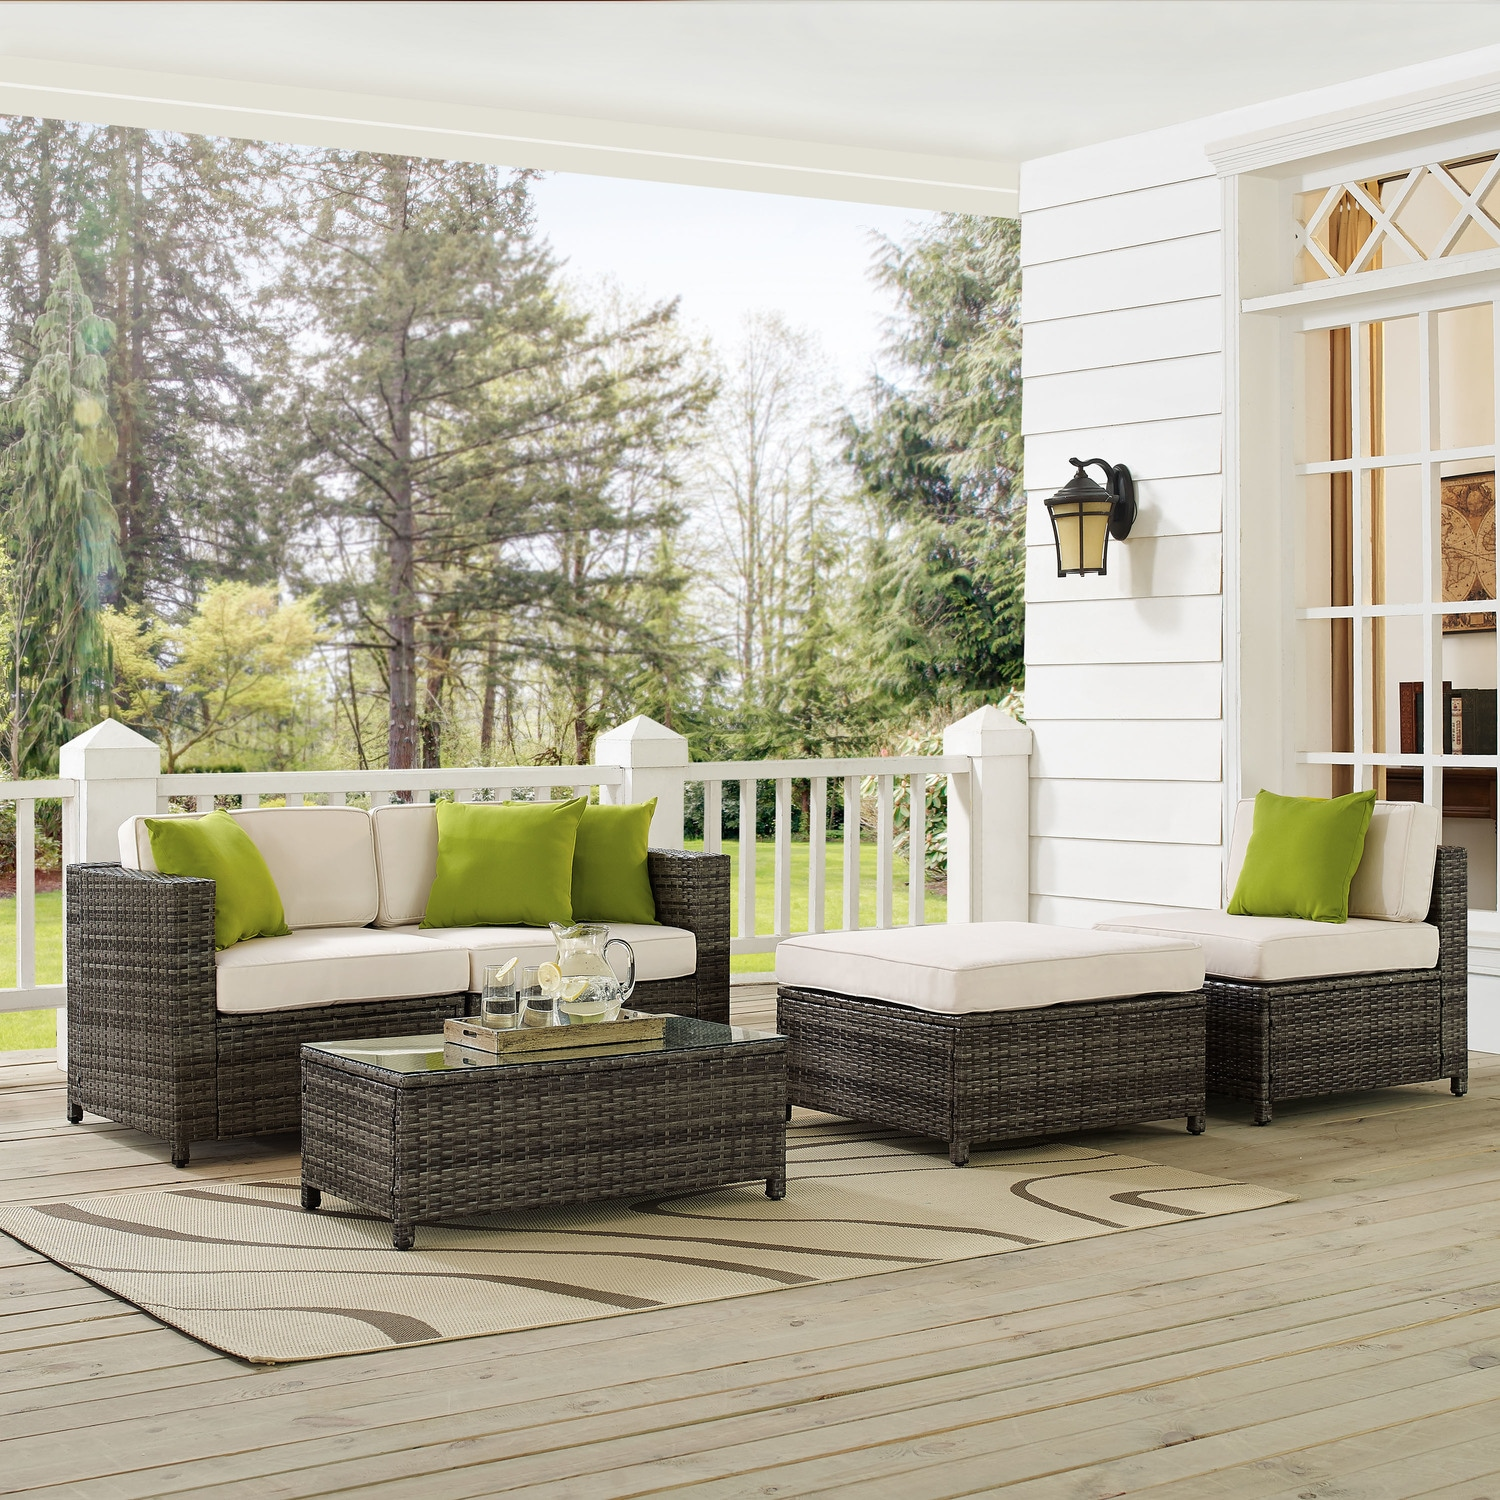 Outdoor Furniture - Jacques 2-Piece Outdoor Loveseat, Armless Chair, Ottoman, and Coffee Table Set - Gray